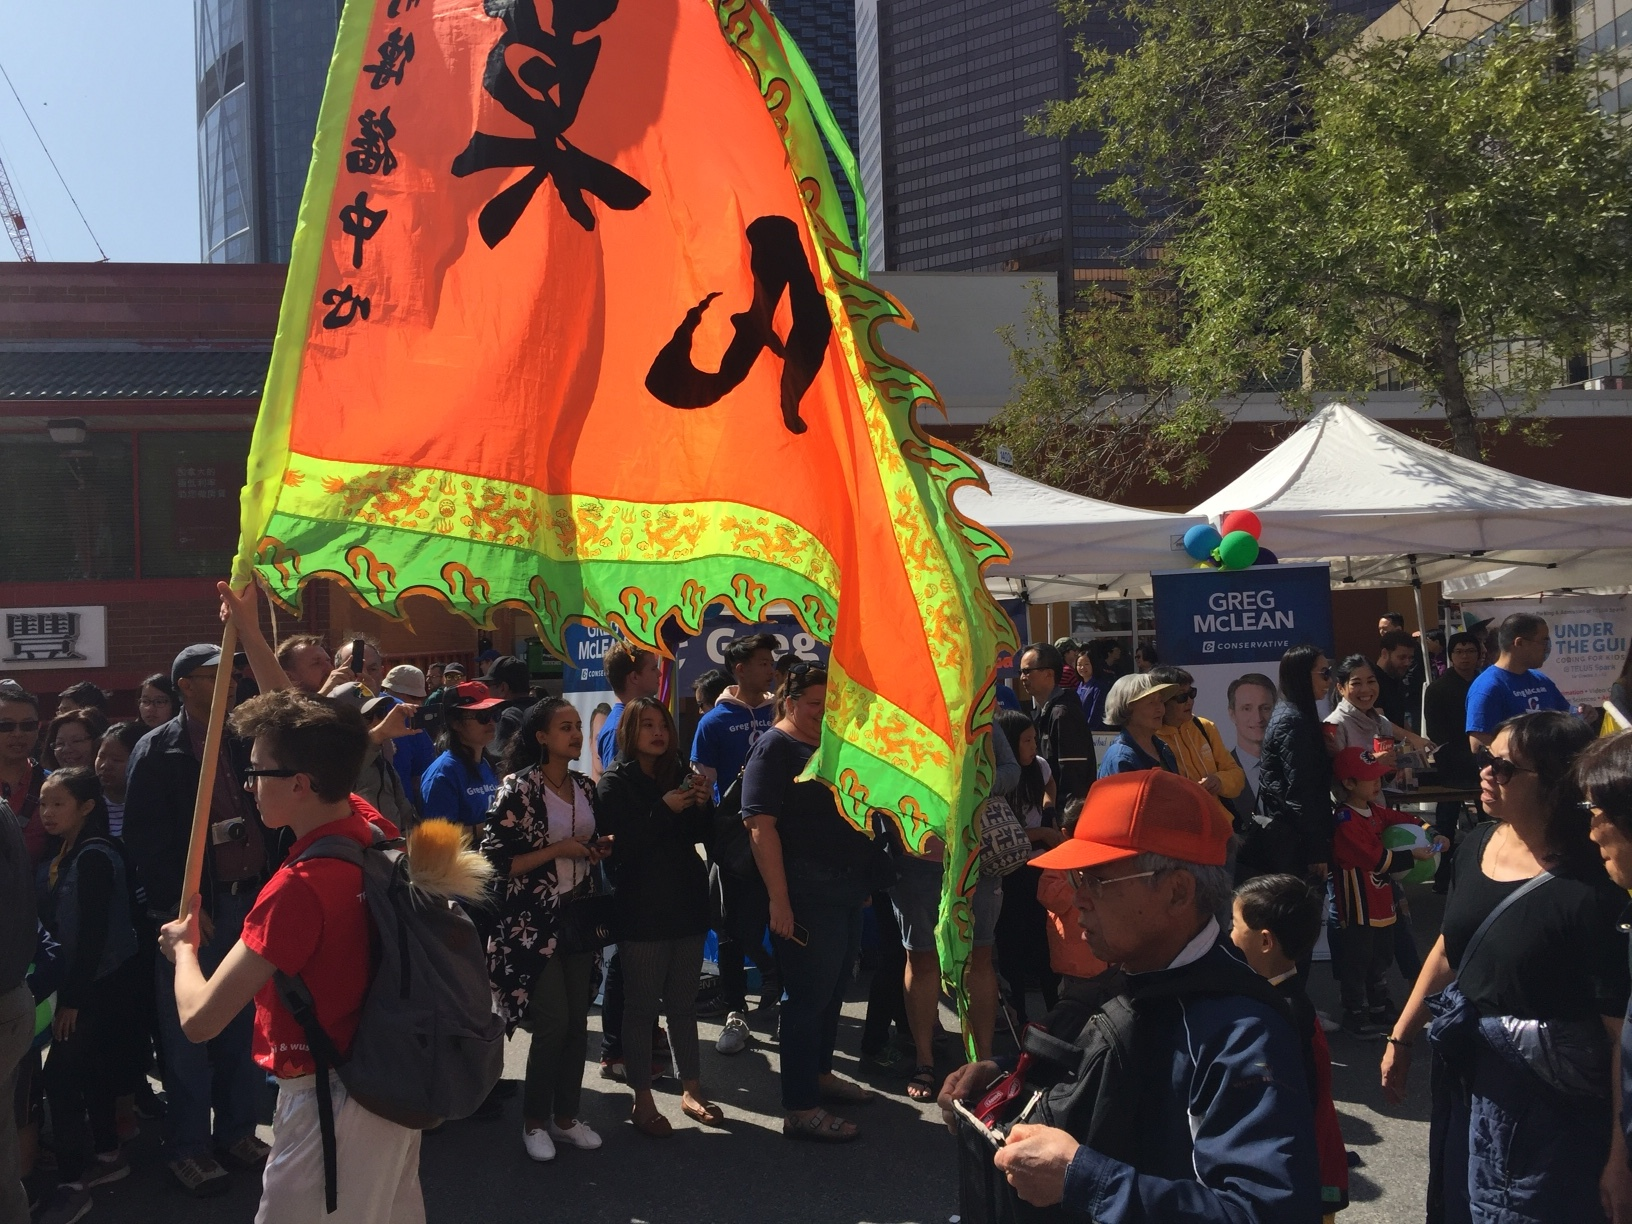 Everyone loves a parade, and our tent had a front row view.